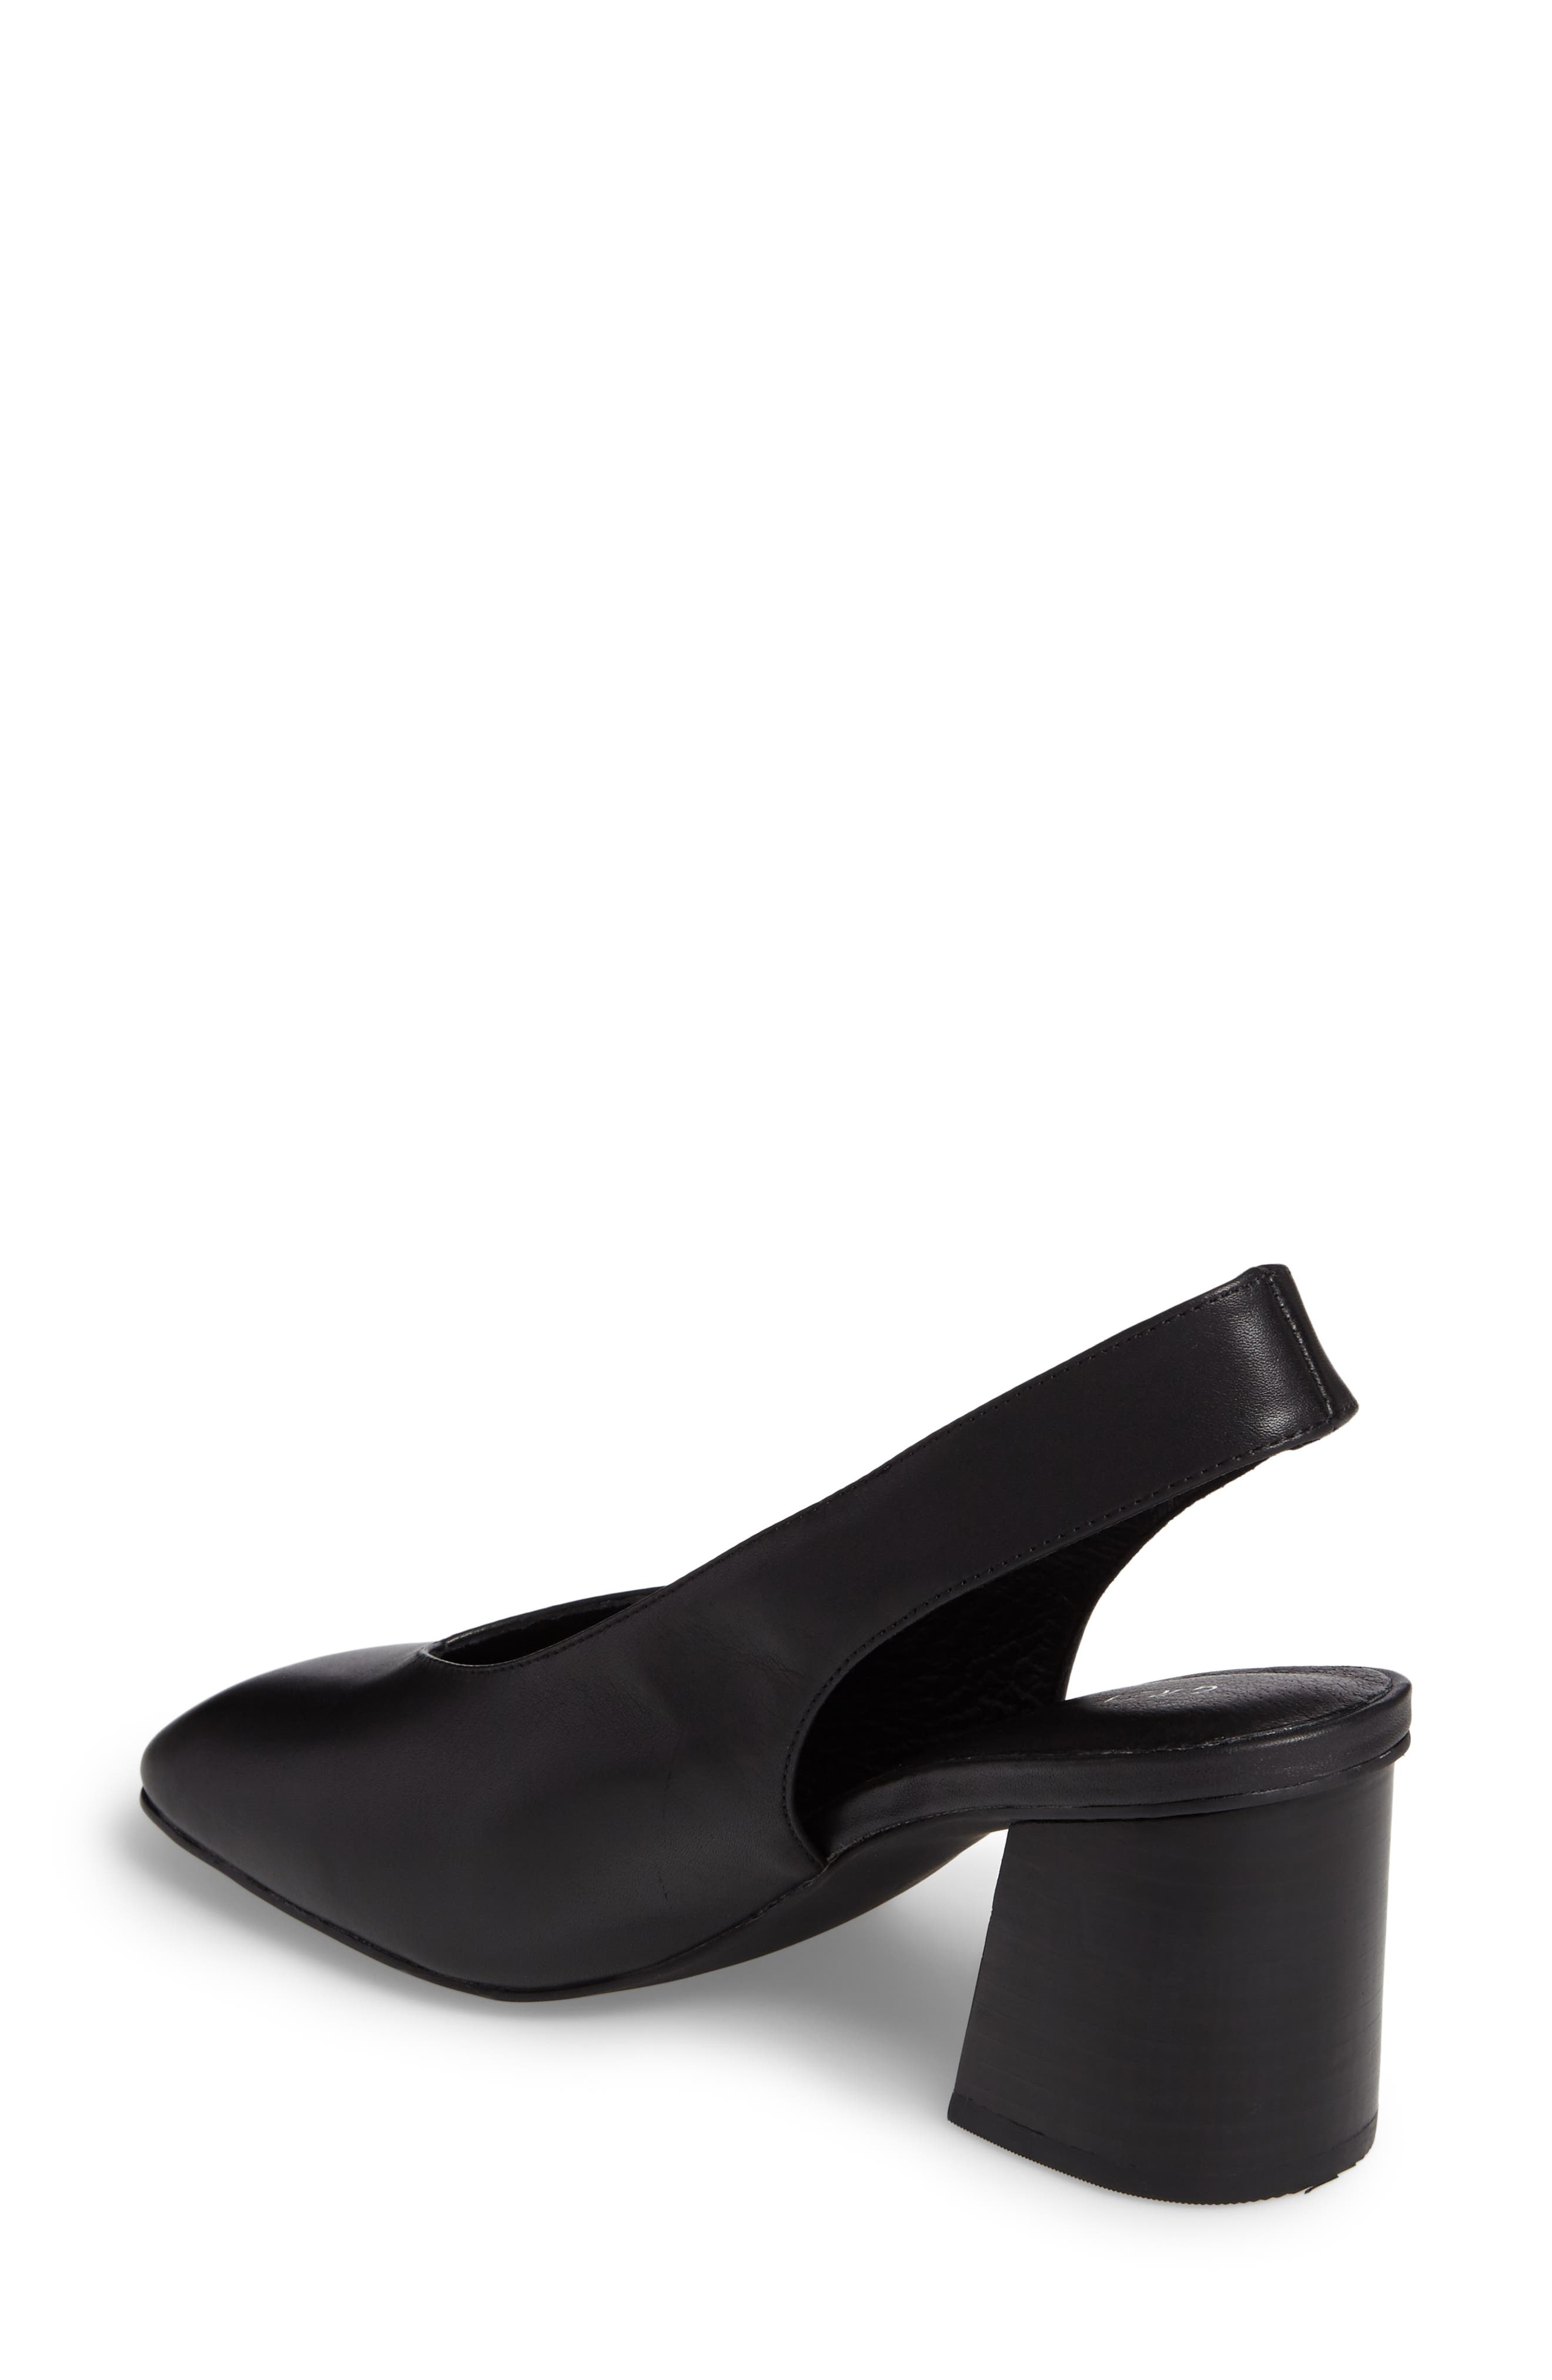 Sydney Square-Toe Slingback Pump,                             Alternate thumbnail 2, color,                             Black